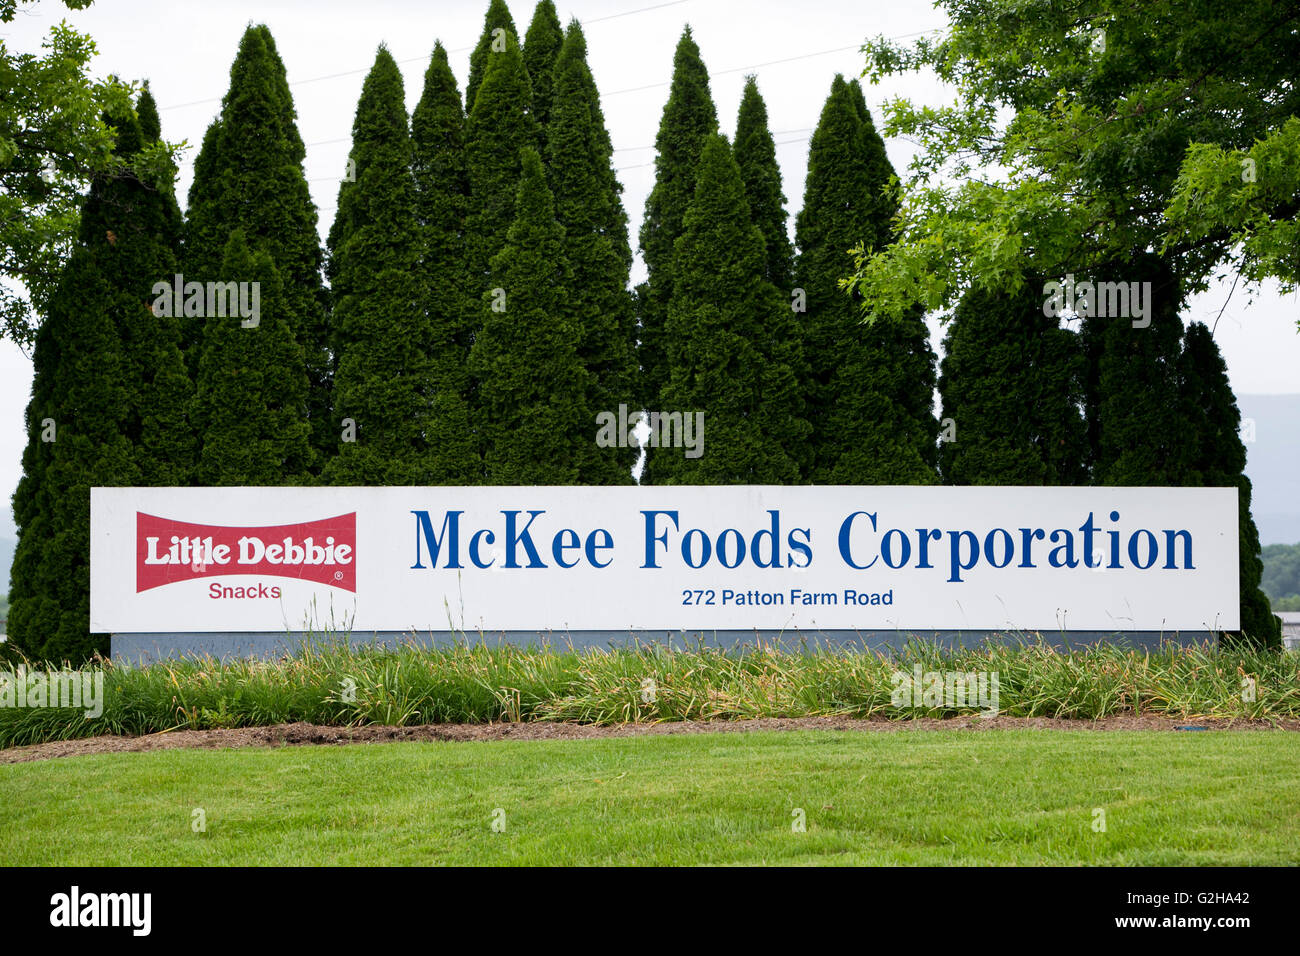 A logo sign outside of a facility occupied by the McKee Foods Corporation, parent company of Little Debbie snacks, - Stock Image